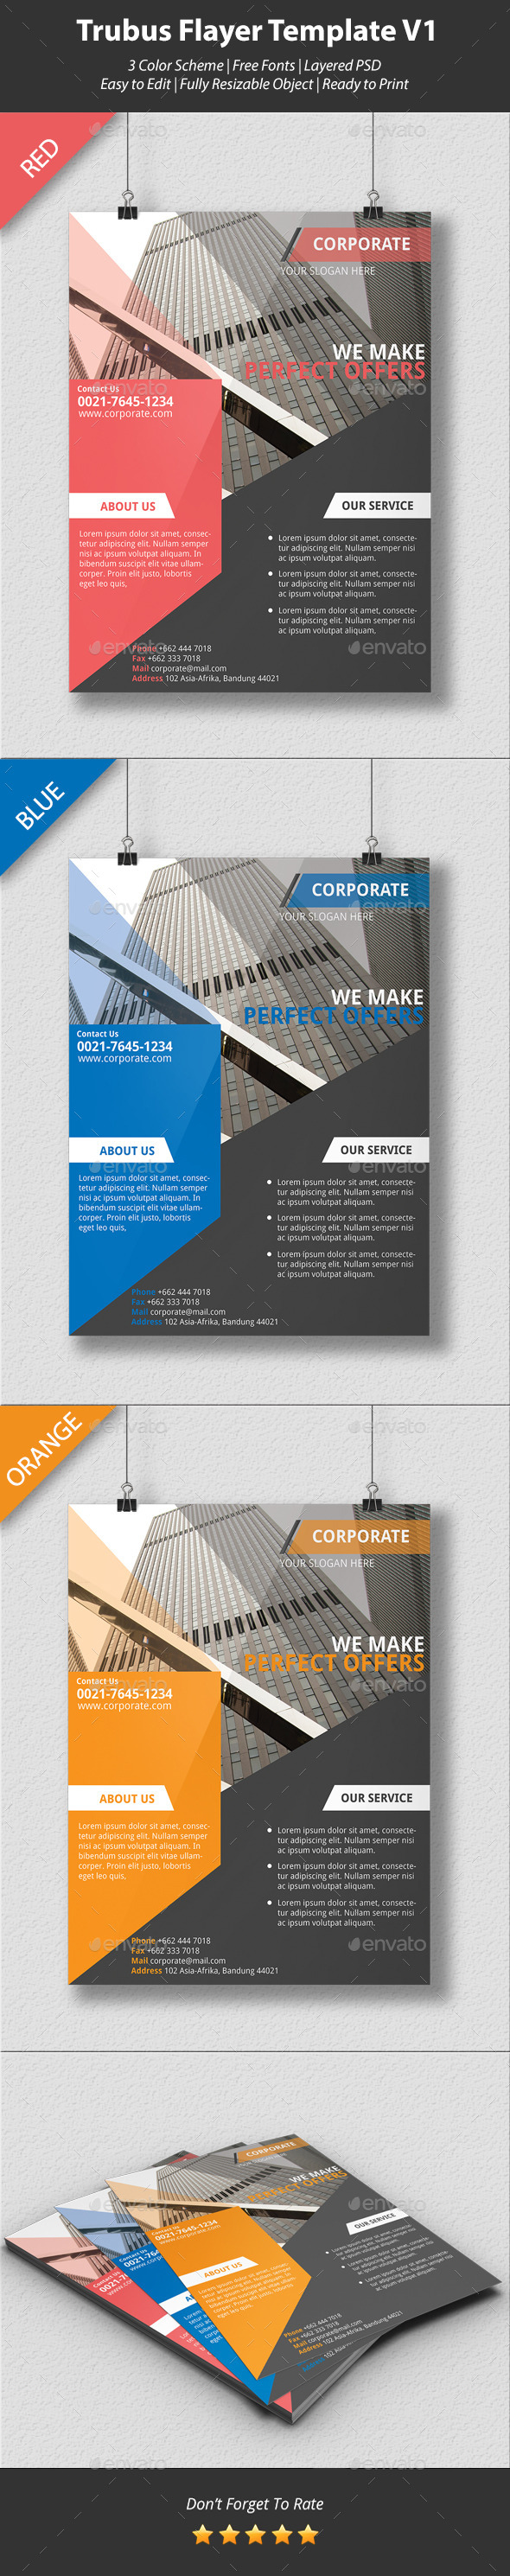 Trubus Flyer Template V1 - Corporate Flyers